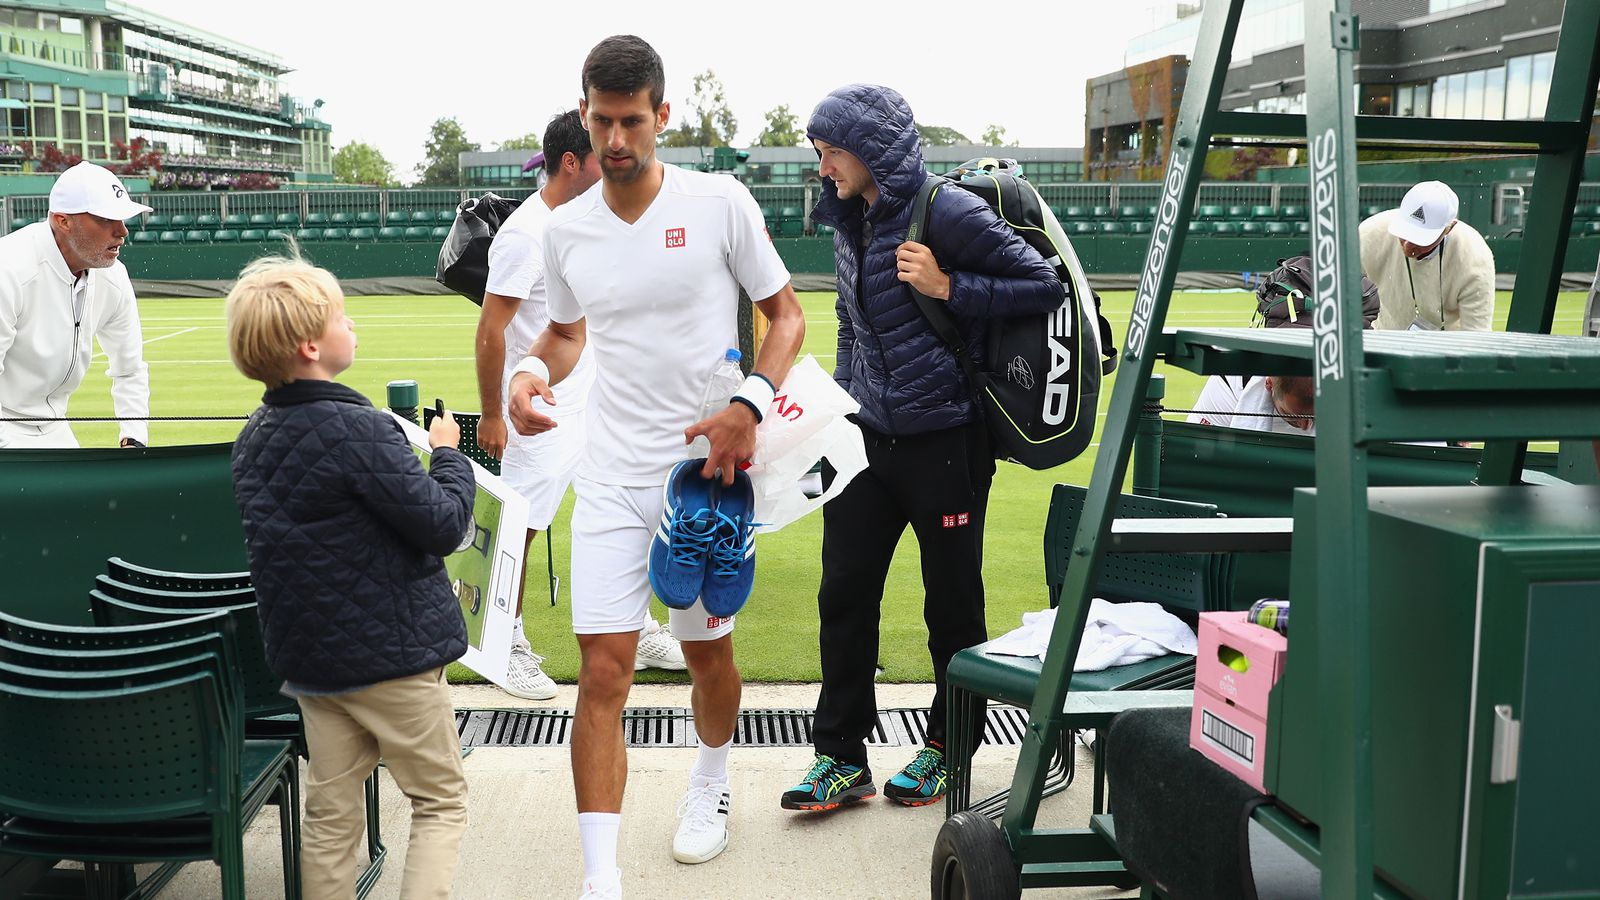 Wimbledon 2016: Time, TV schedule, live streaming for Monday's matches